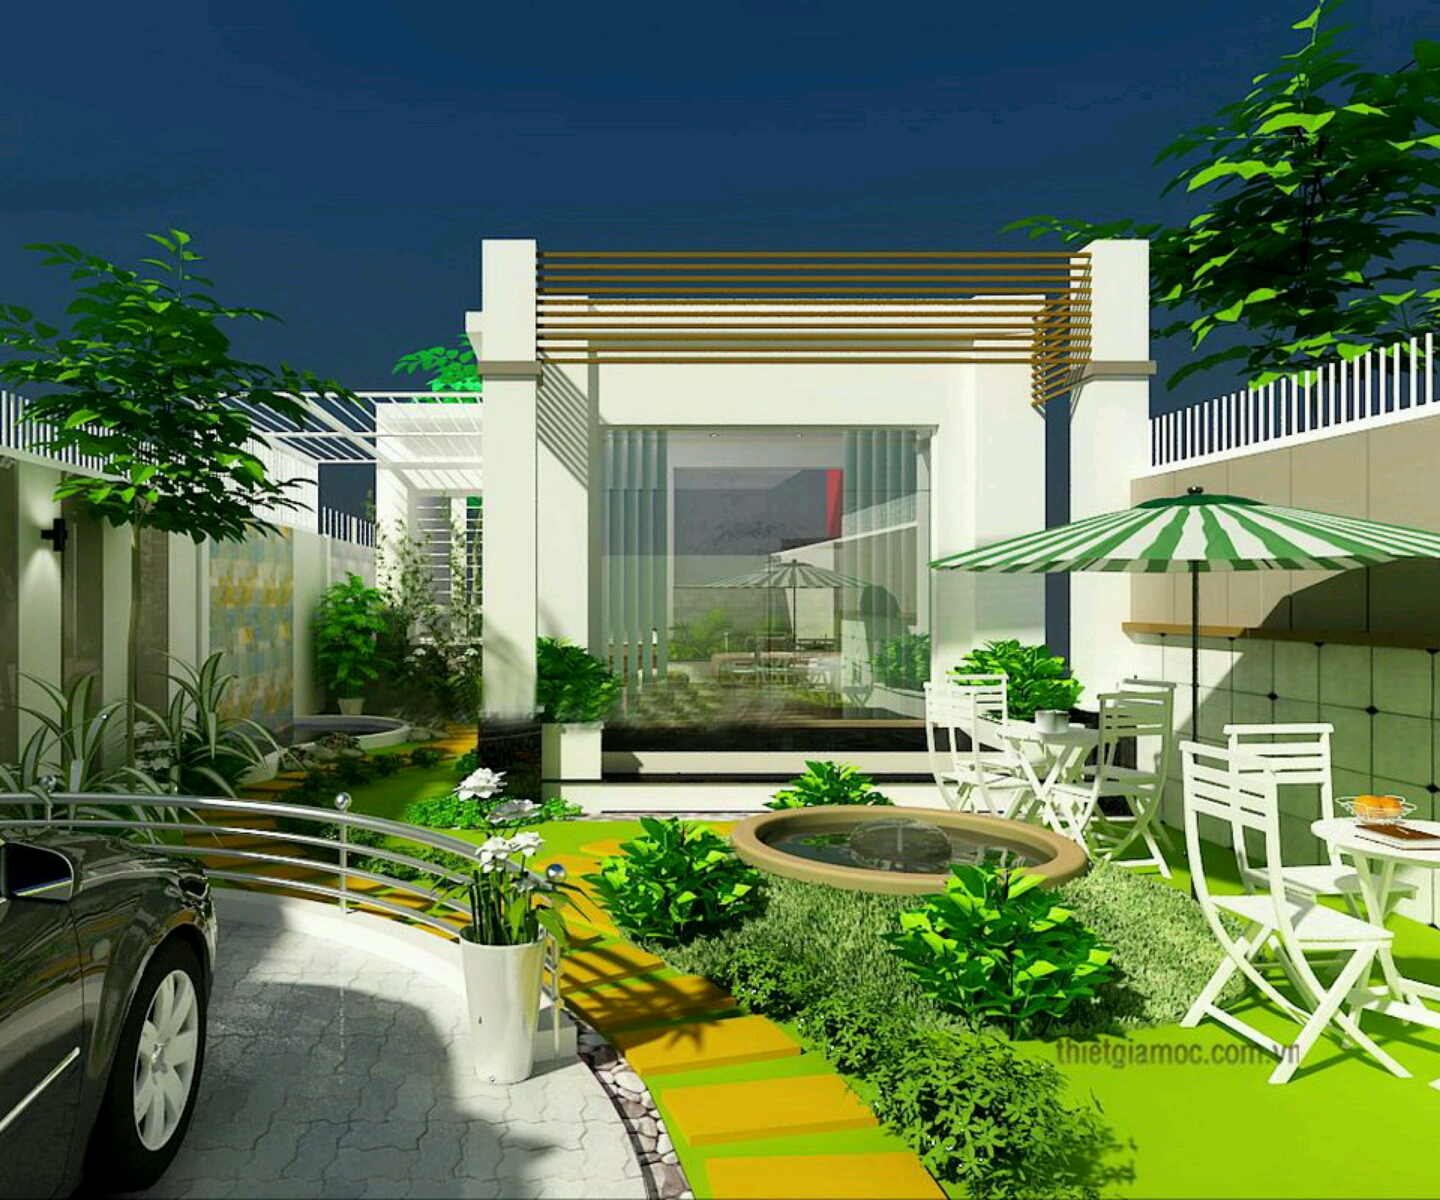 New home designs latest modern homes beautiful garden for Beautiful modern home designs